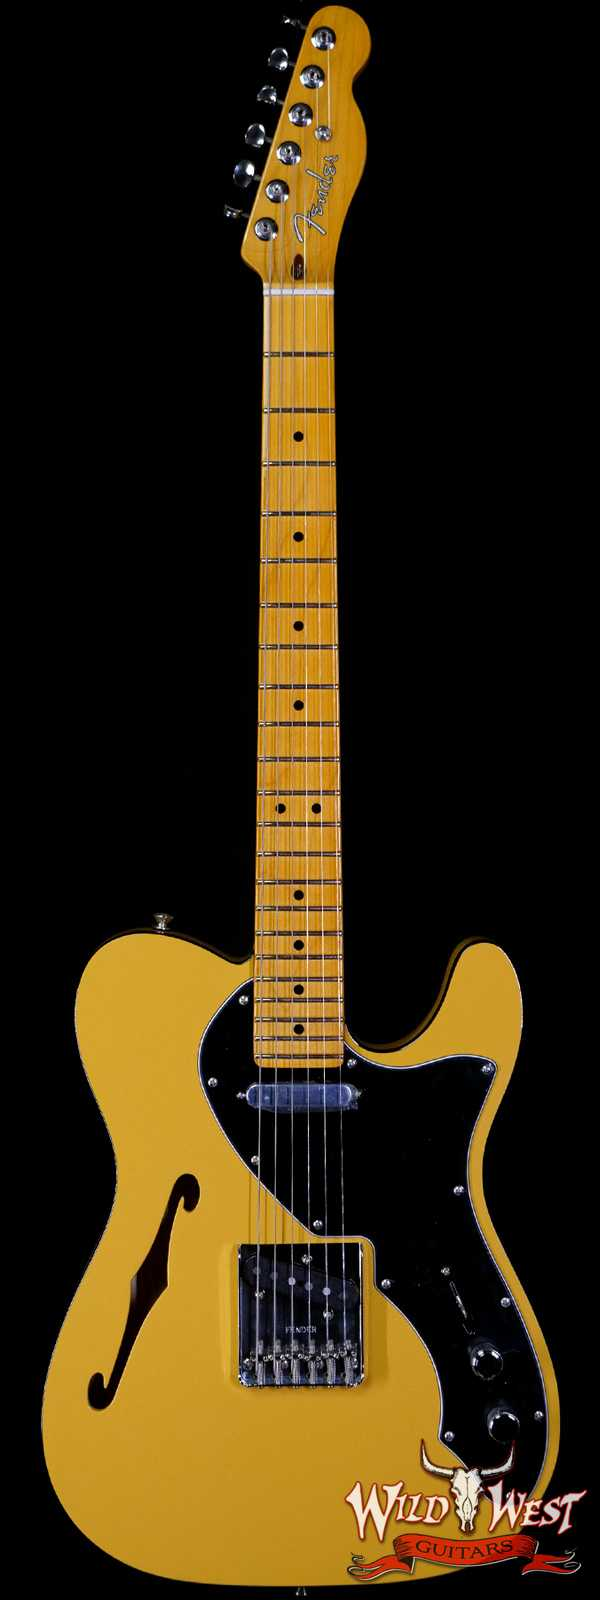 Fender USA Britt Daniel Tele® Thinline Telecaster Amarillo Gold Custom Shop Pickups R19075961